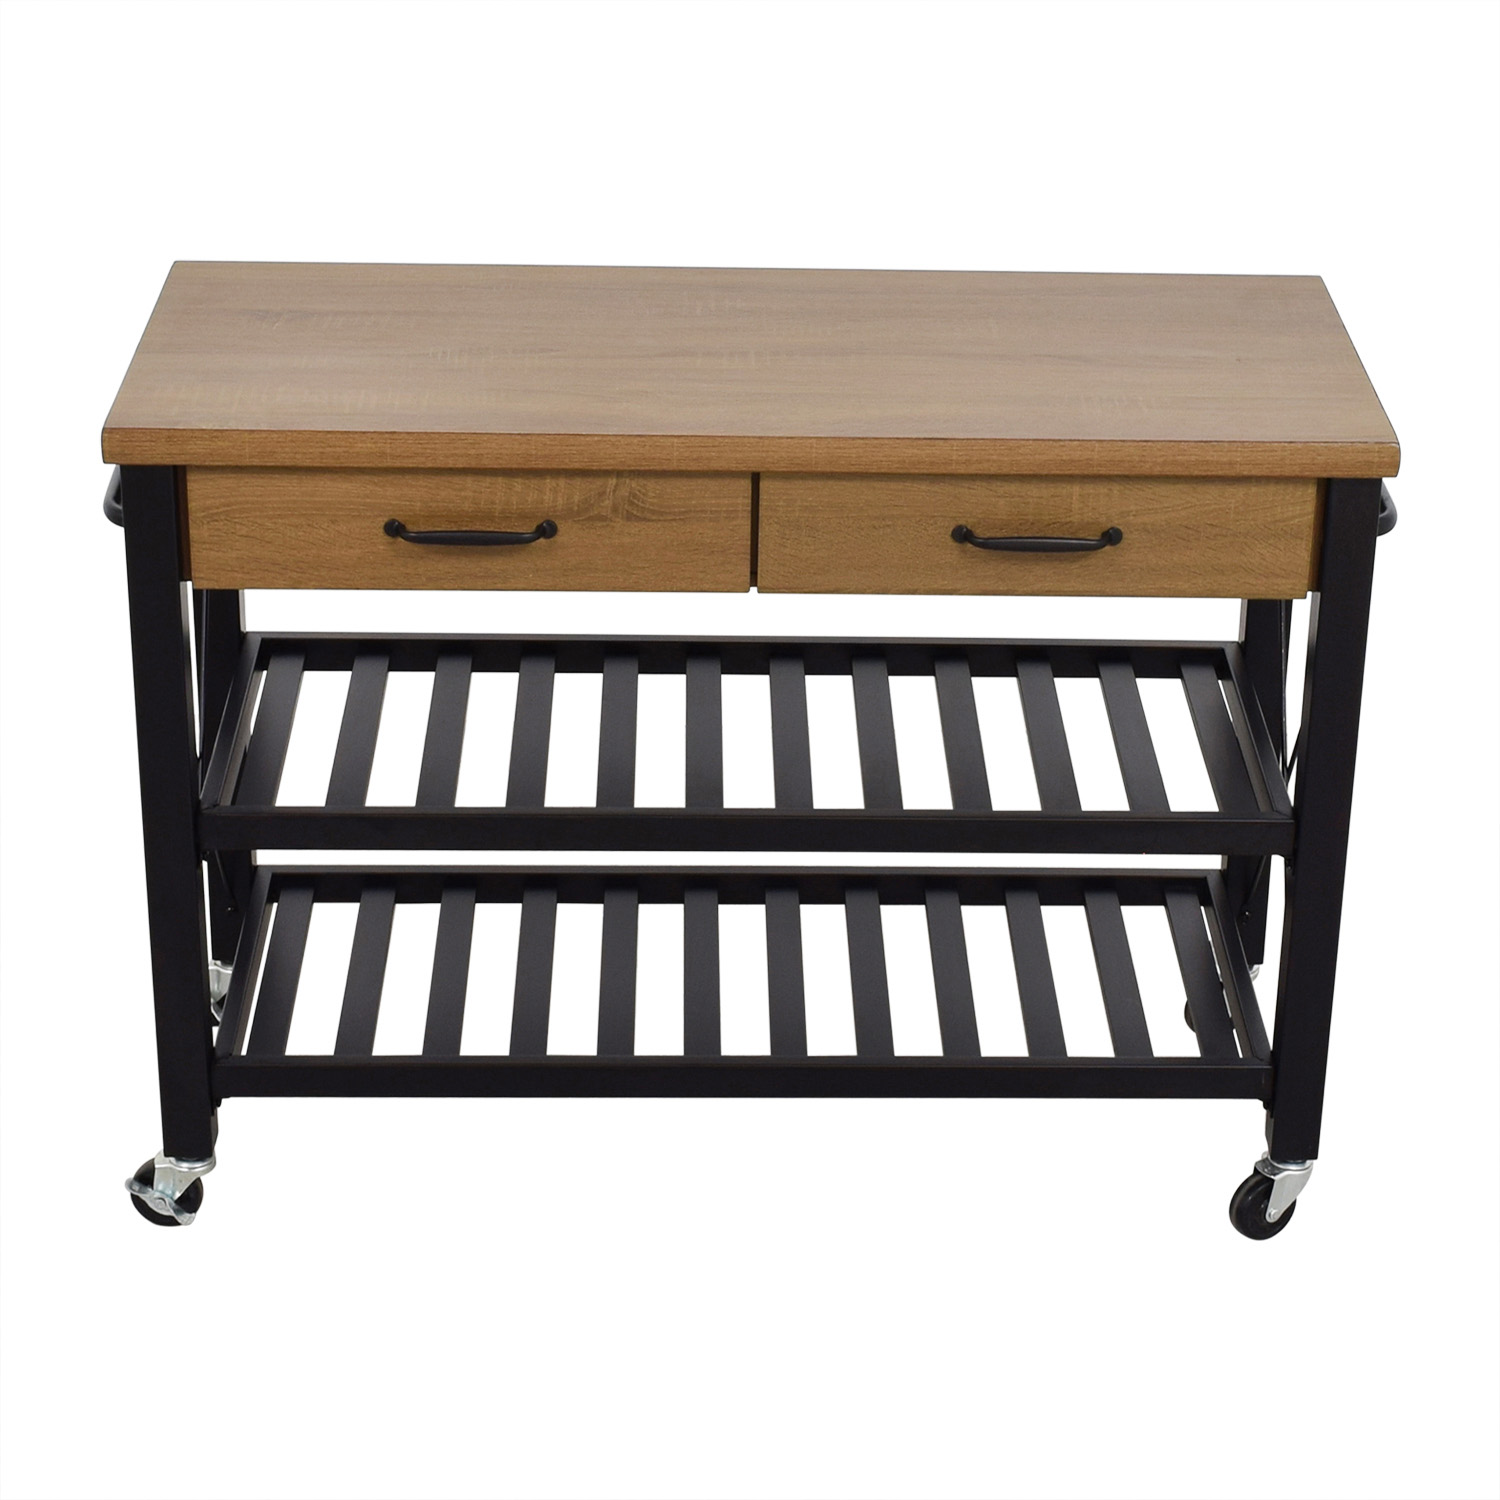 buy Walmart Kitchen Island Cart on Casters Walmart Tables